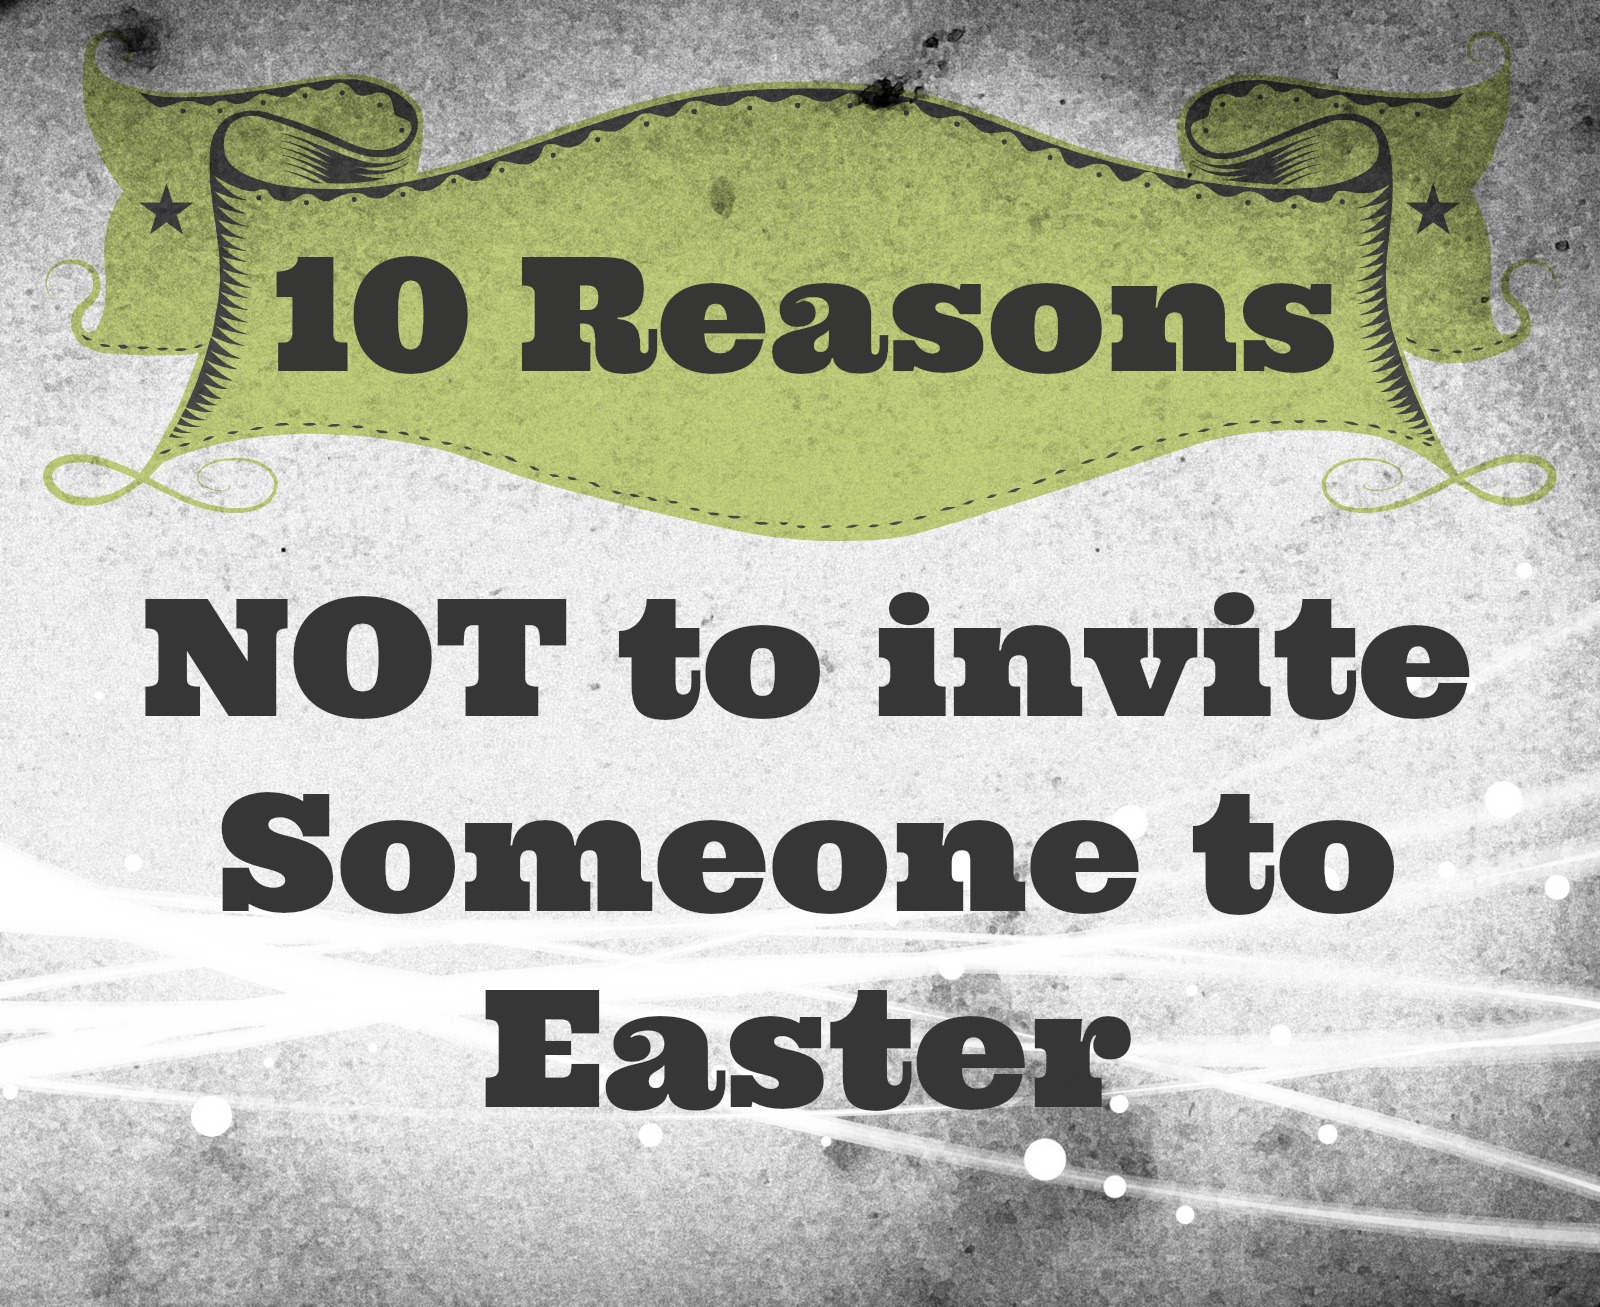 10 Reasons NOT To Invite Someone To Easter